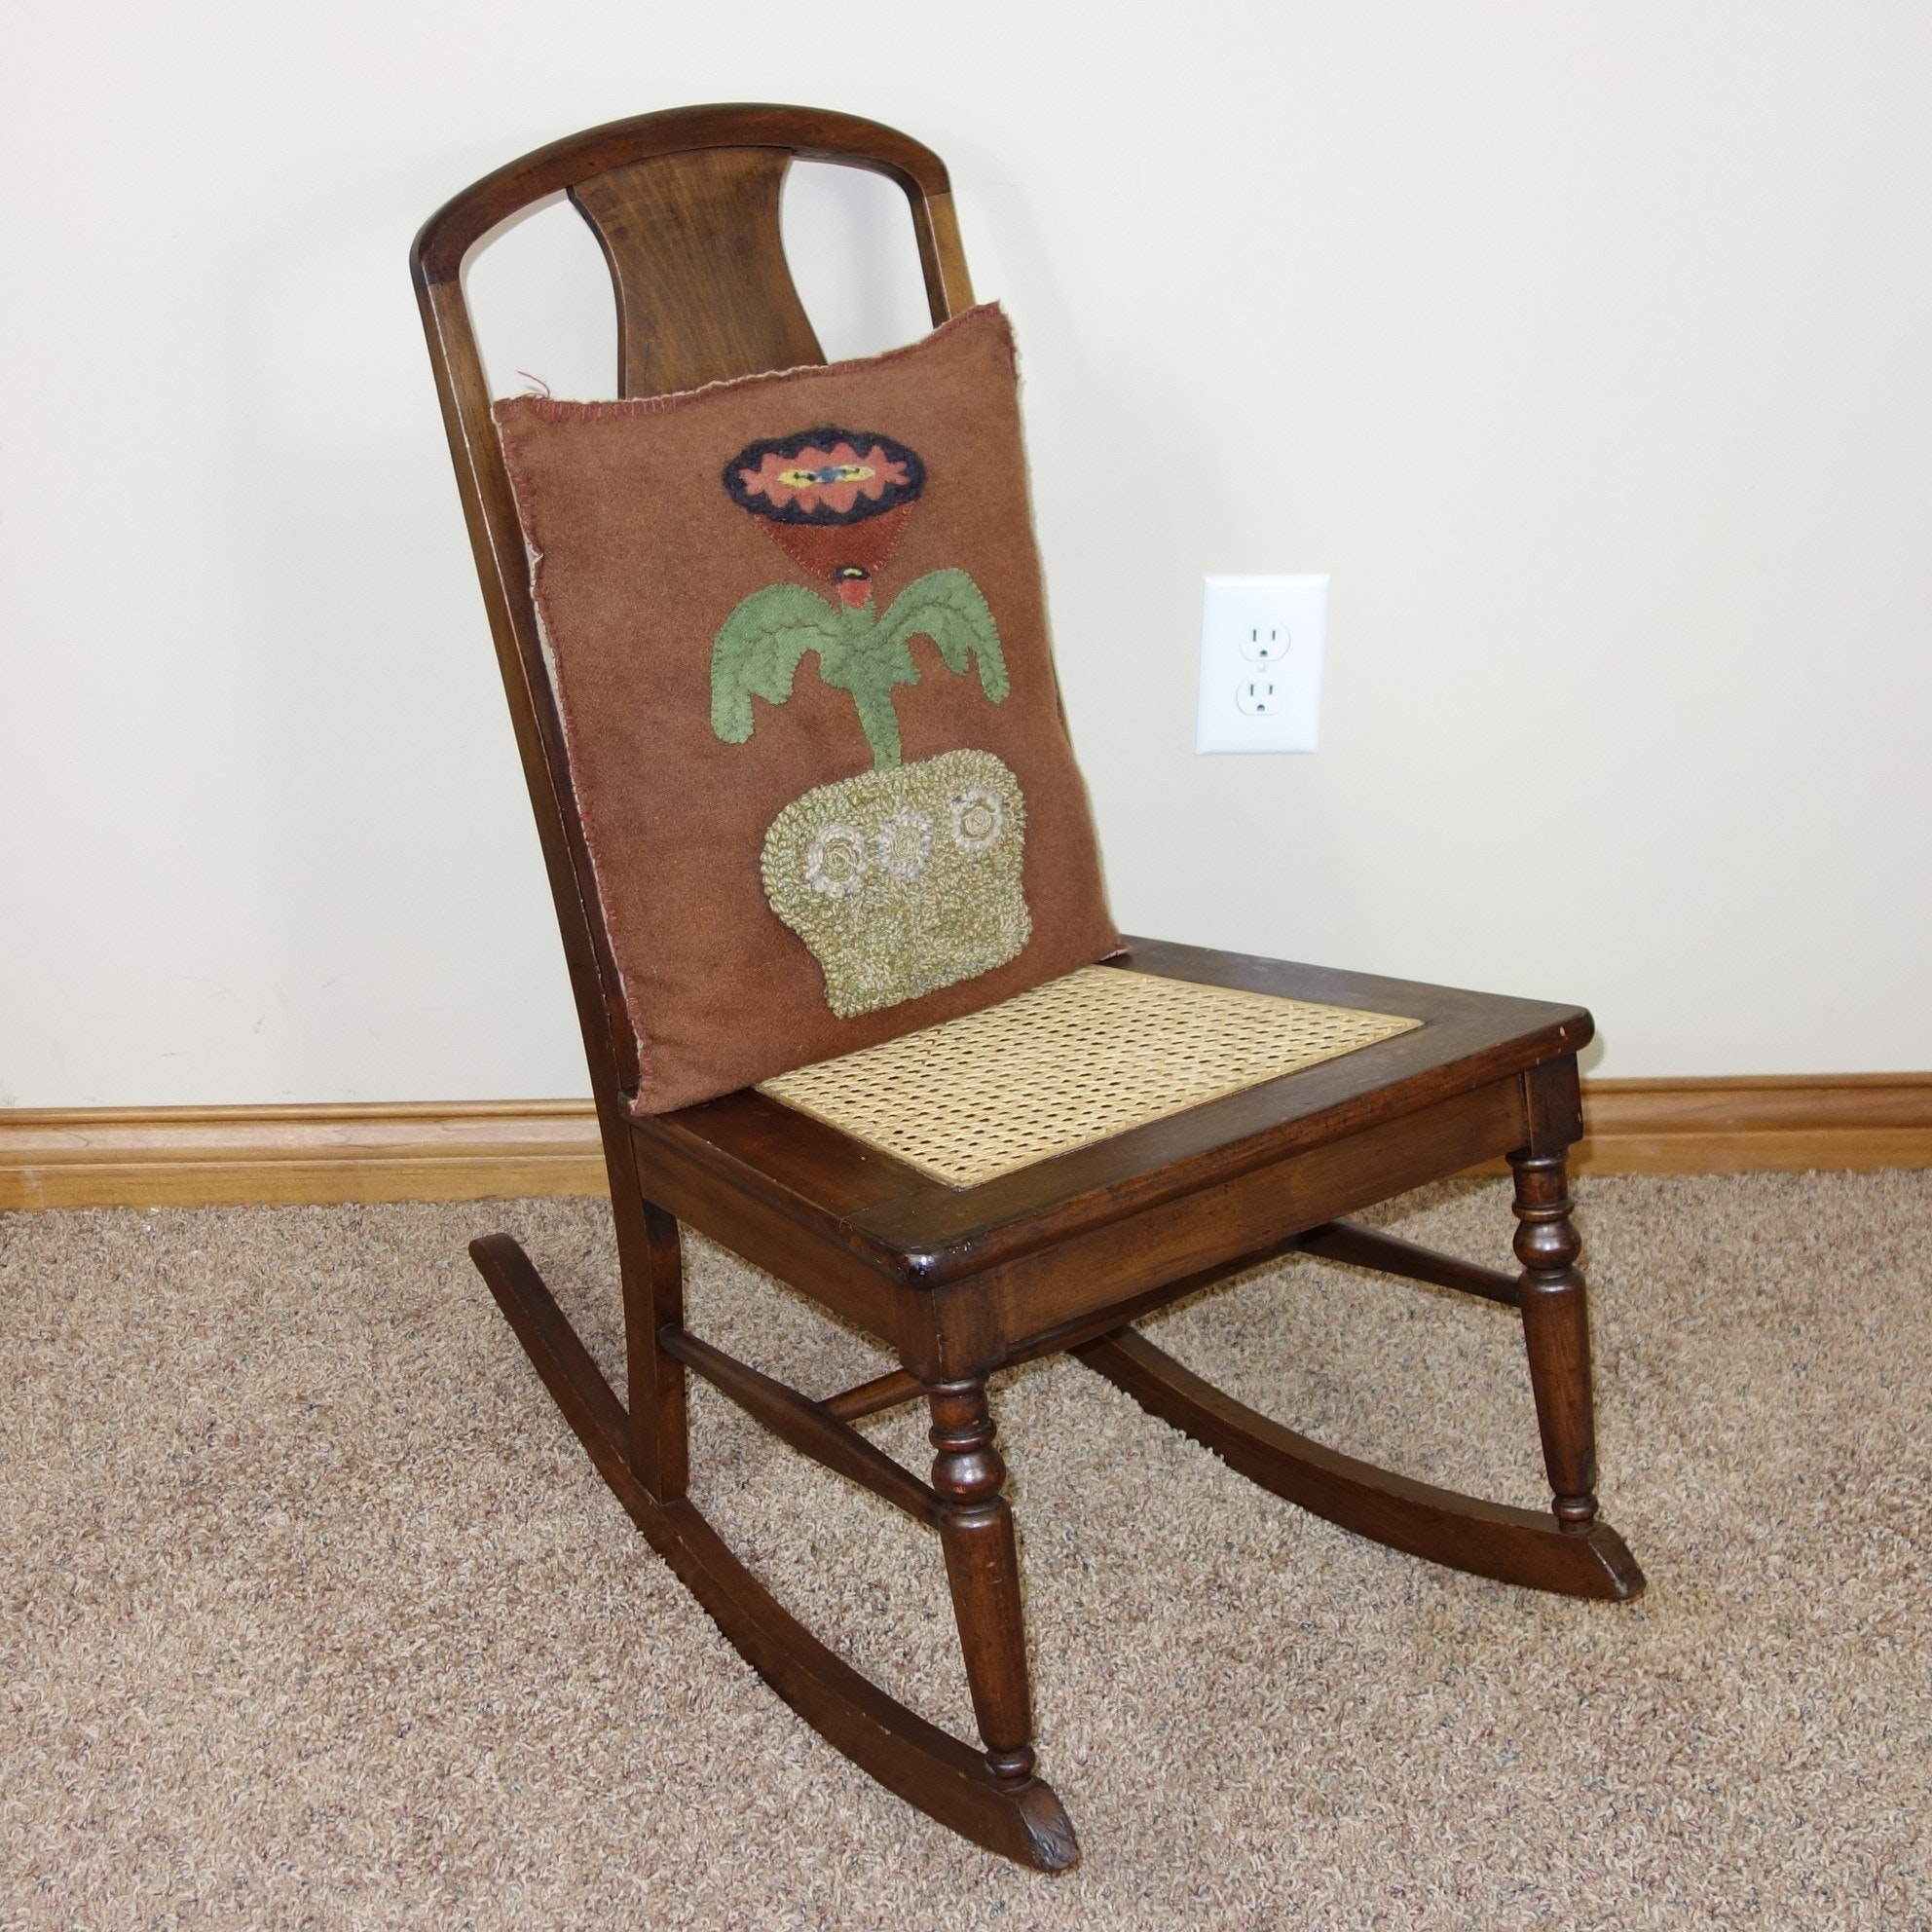 Vintage Wooden Rocker with Cane Seat